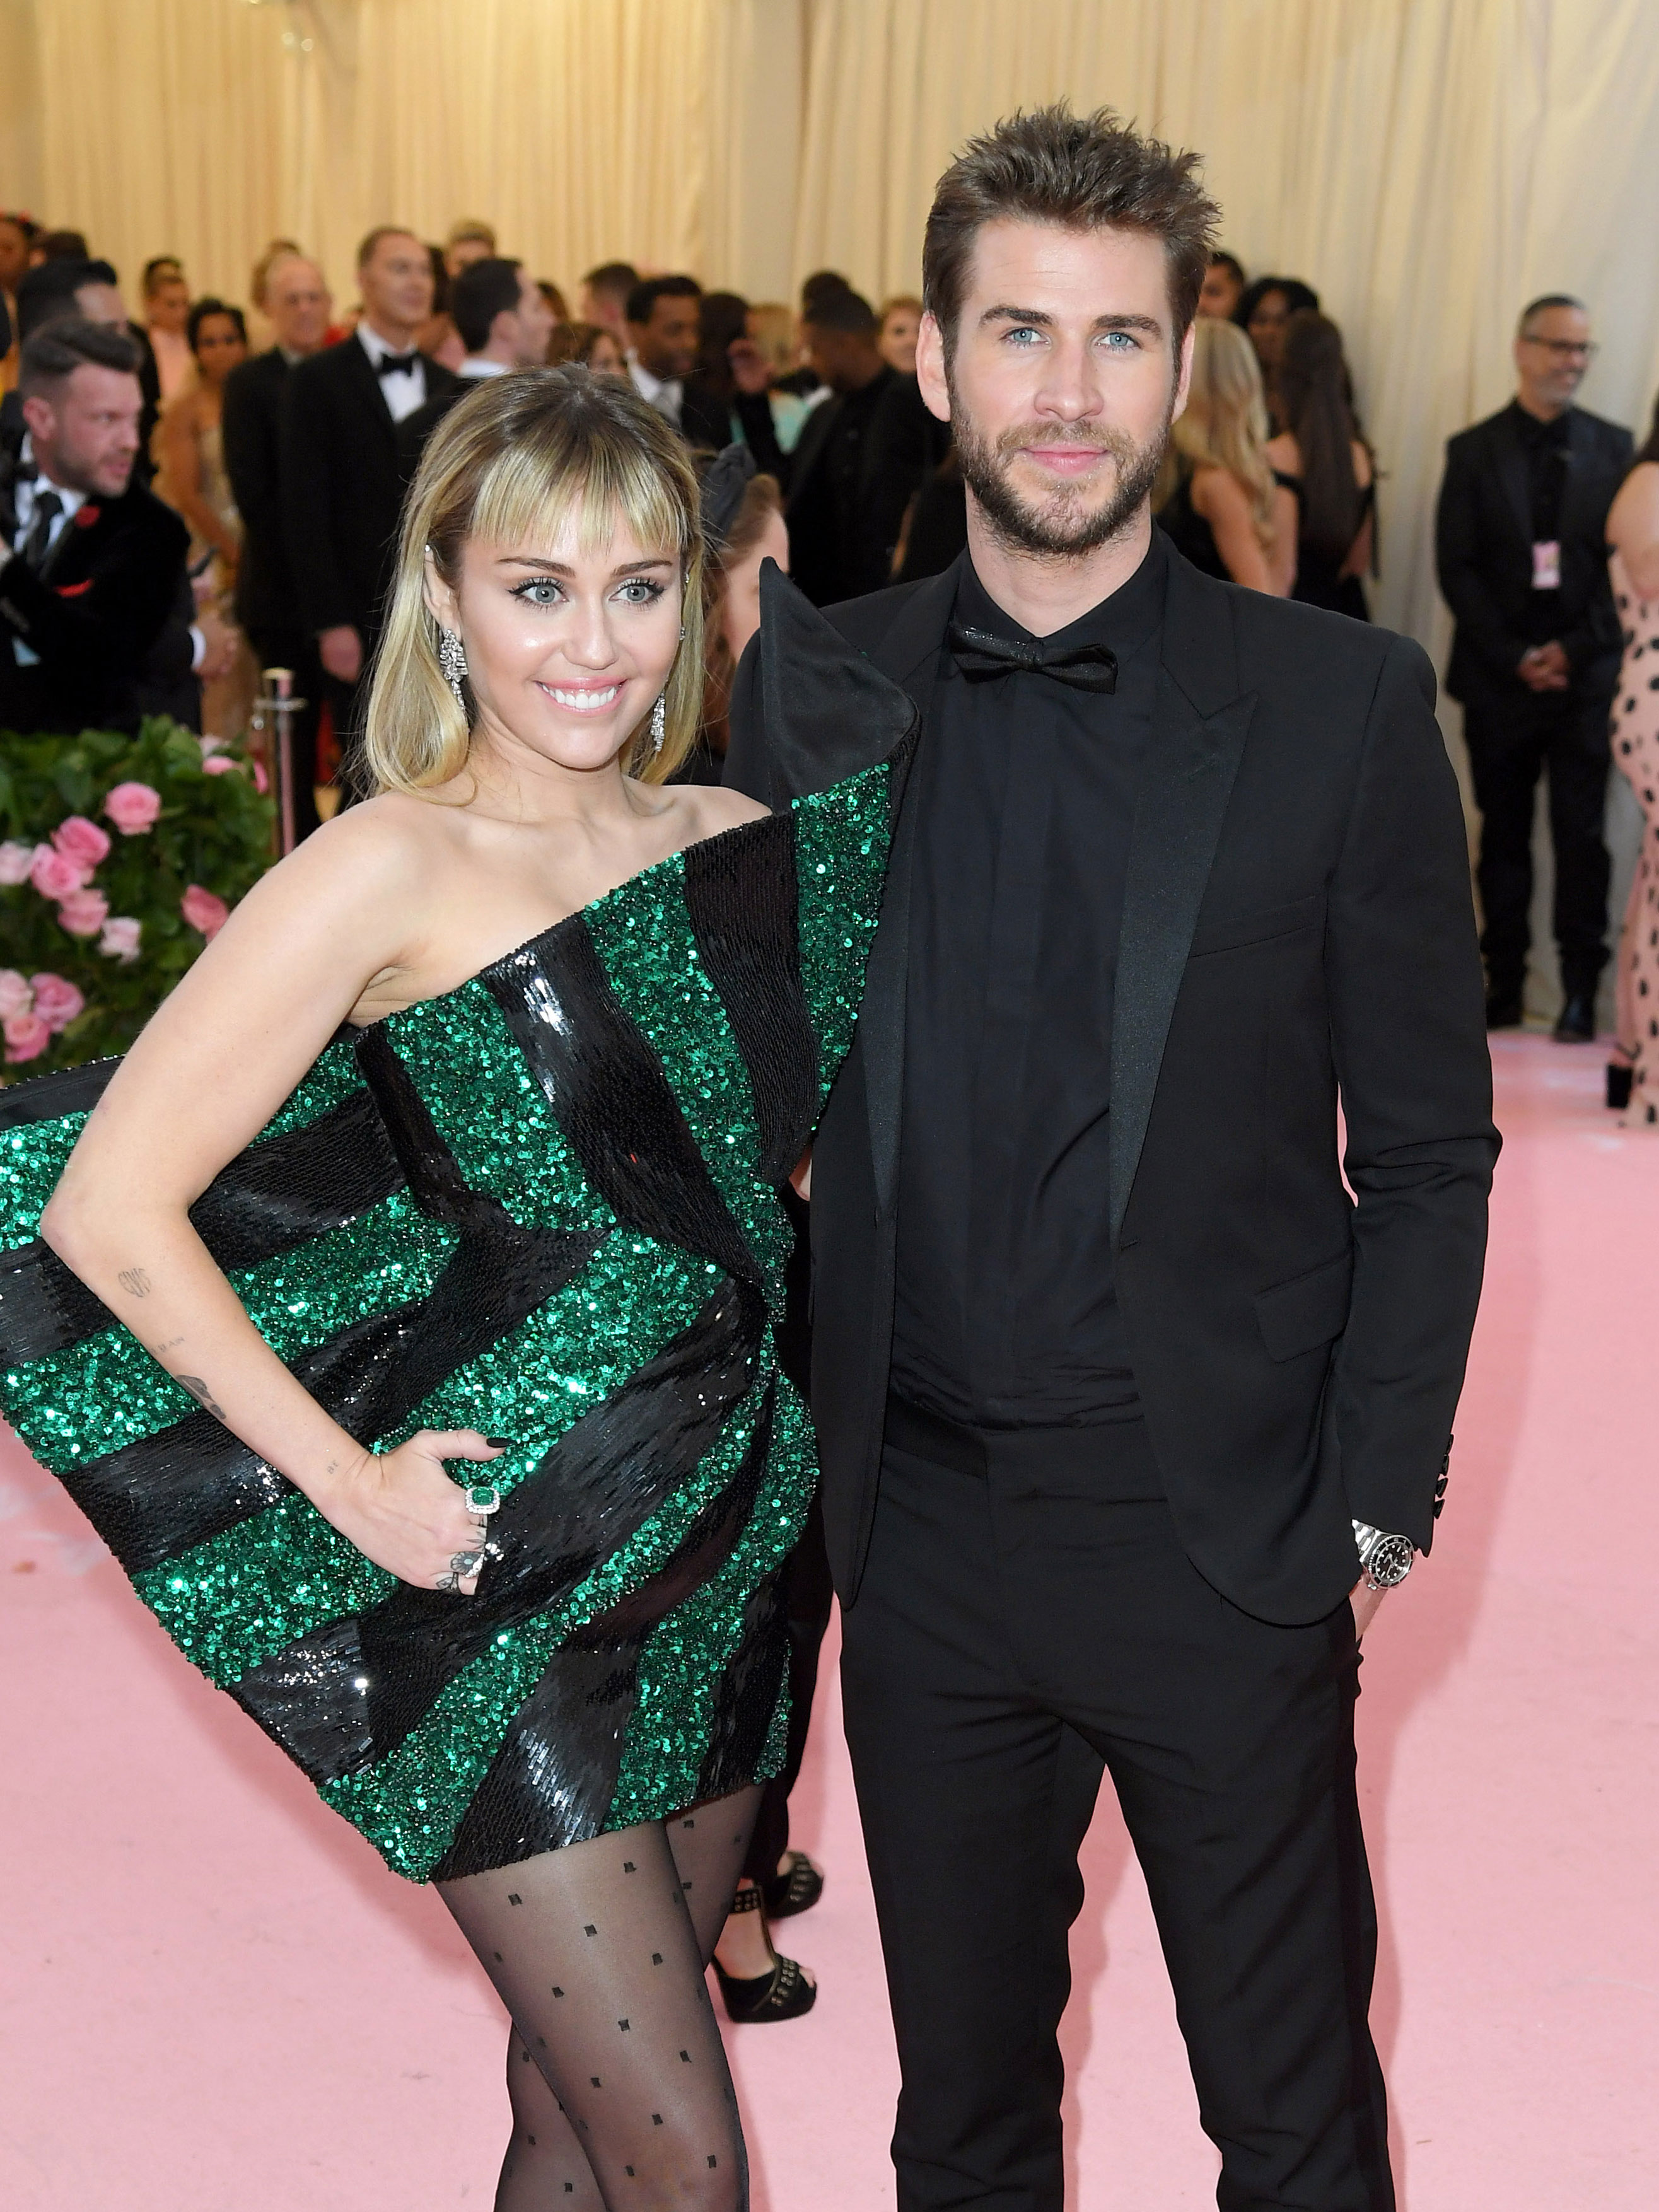 Miley Cyrus denies she cheated on Liam Hemsworth in explosive rant amid shock split: 'I have nothing to hide'